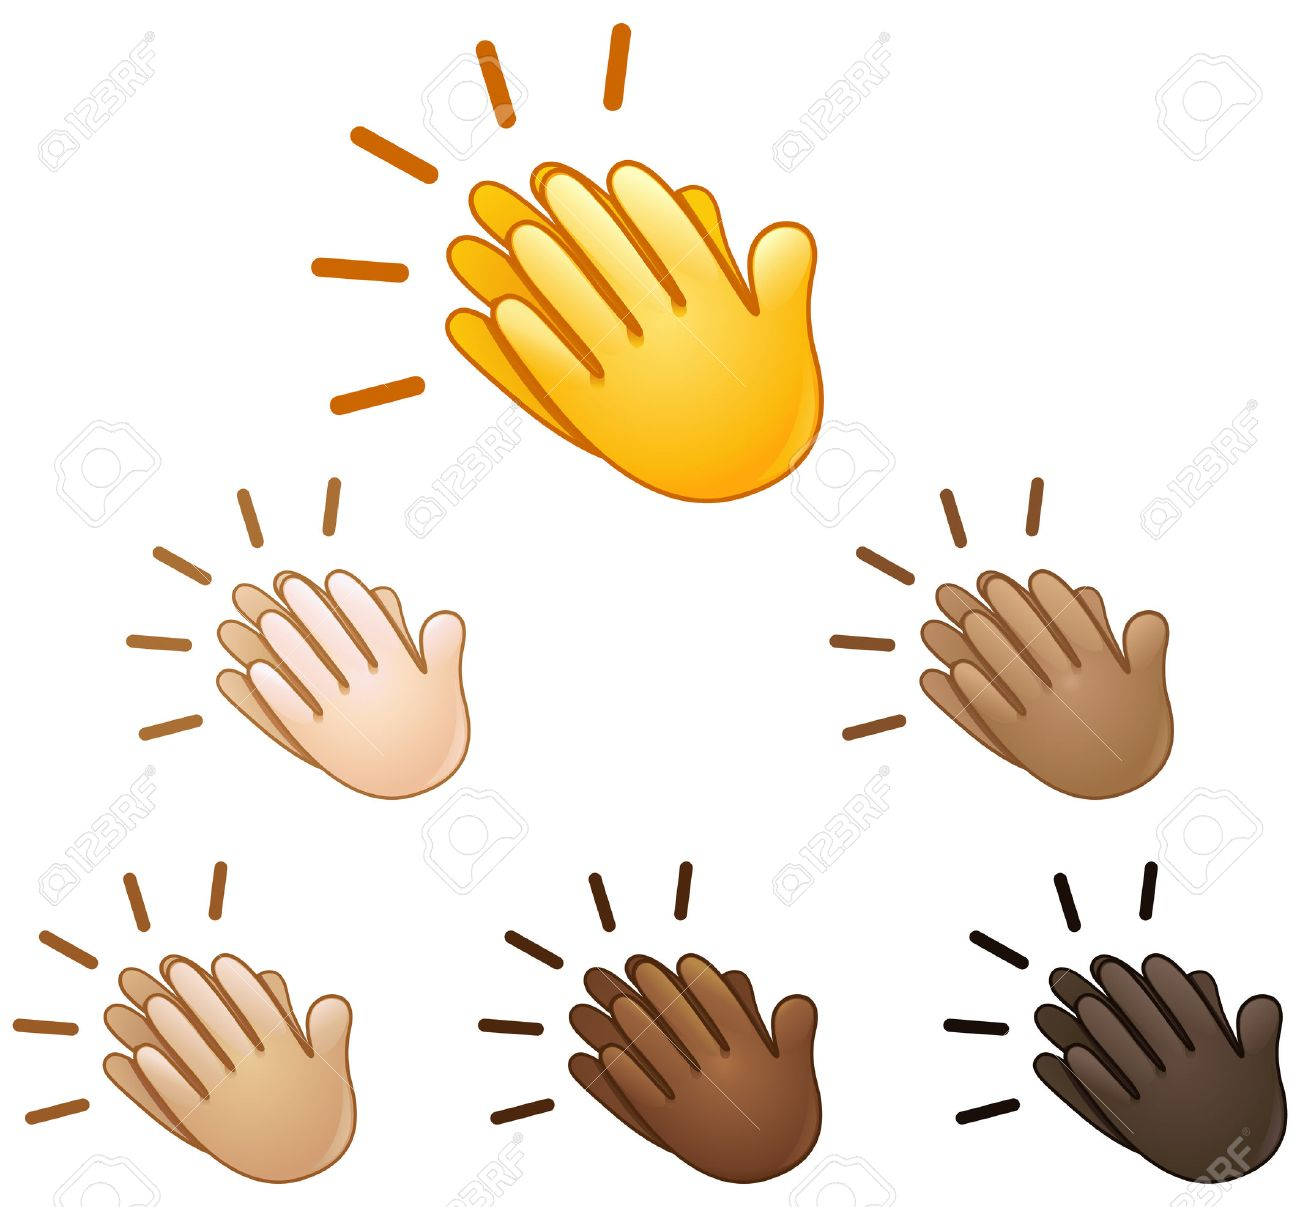 Clapping hands sign emoji set of various skin tones royalty free clapping hands sign emoji set of various skin tones stock vector 63994608 biocorpaavc